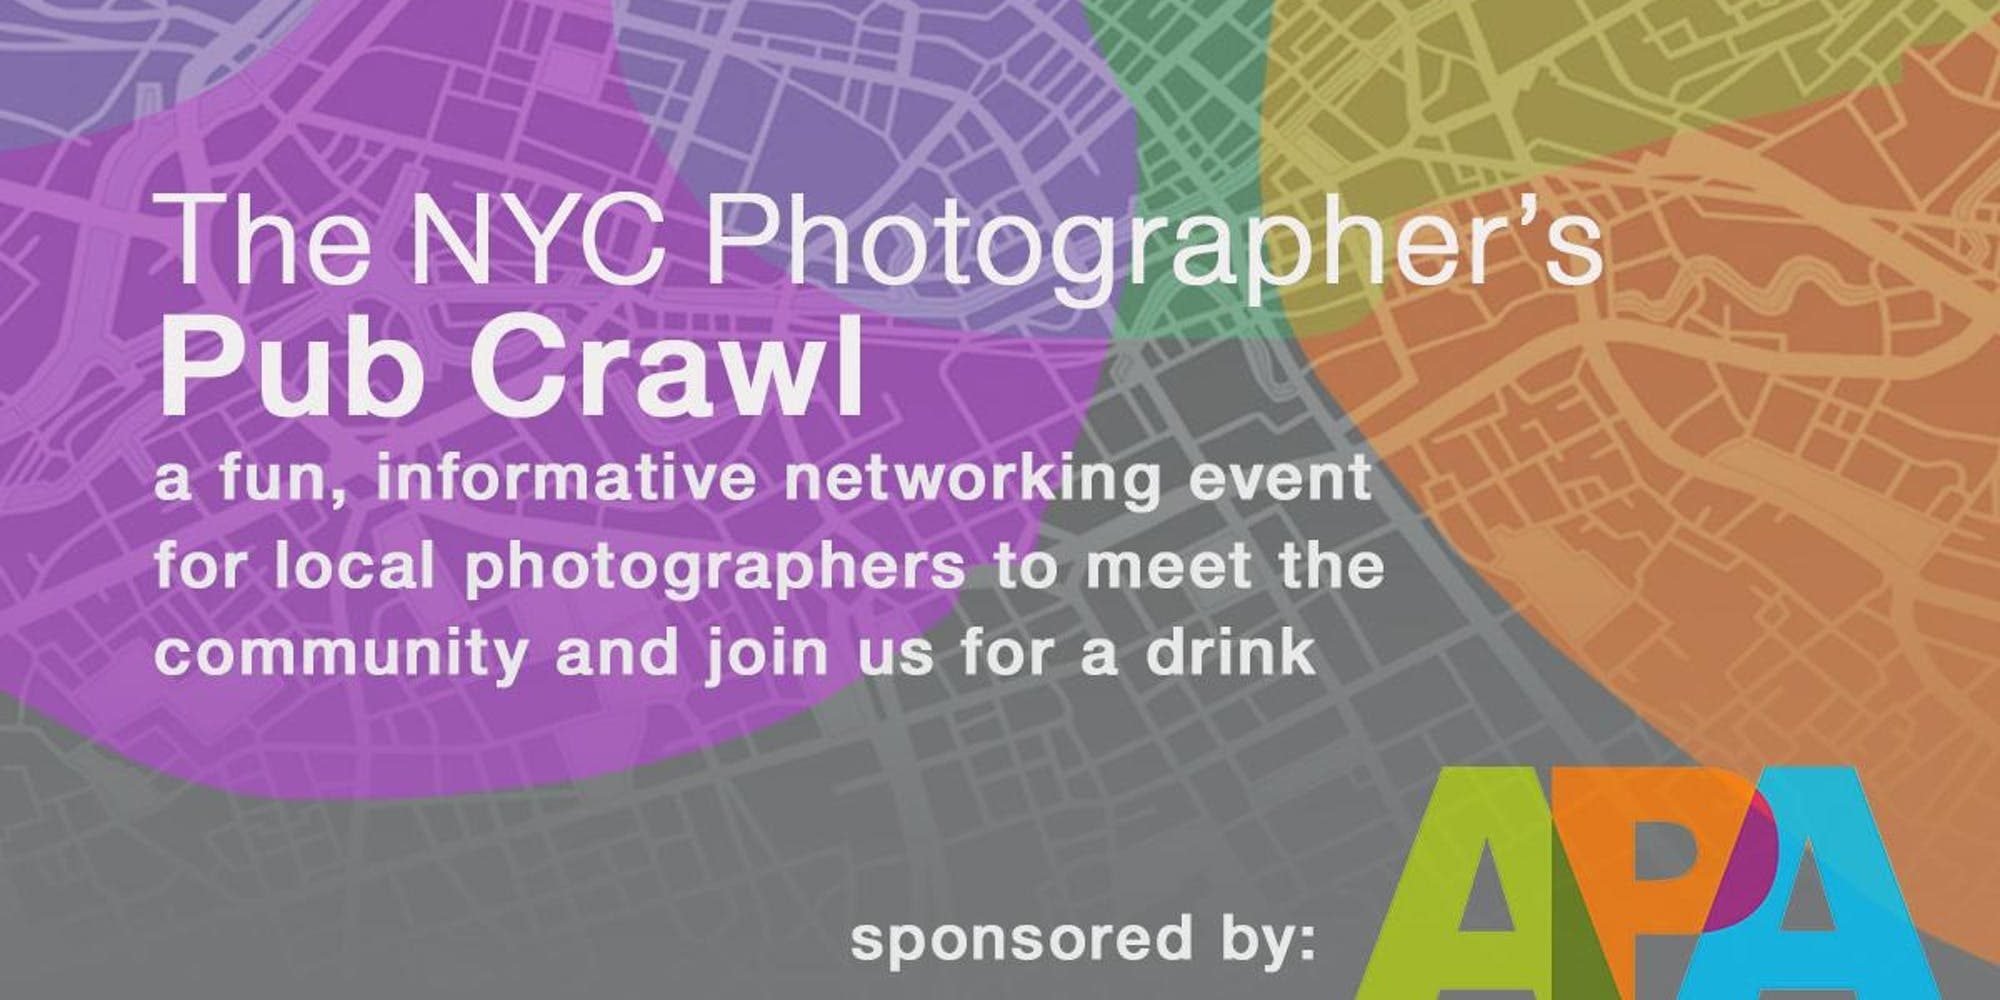 Saturday: There's a Pub Crawl Happening Just for Photographers in NYC